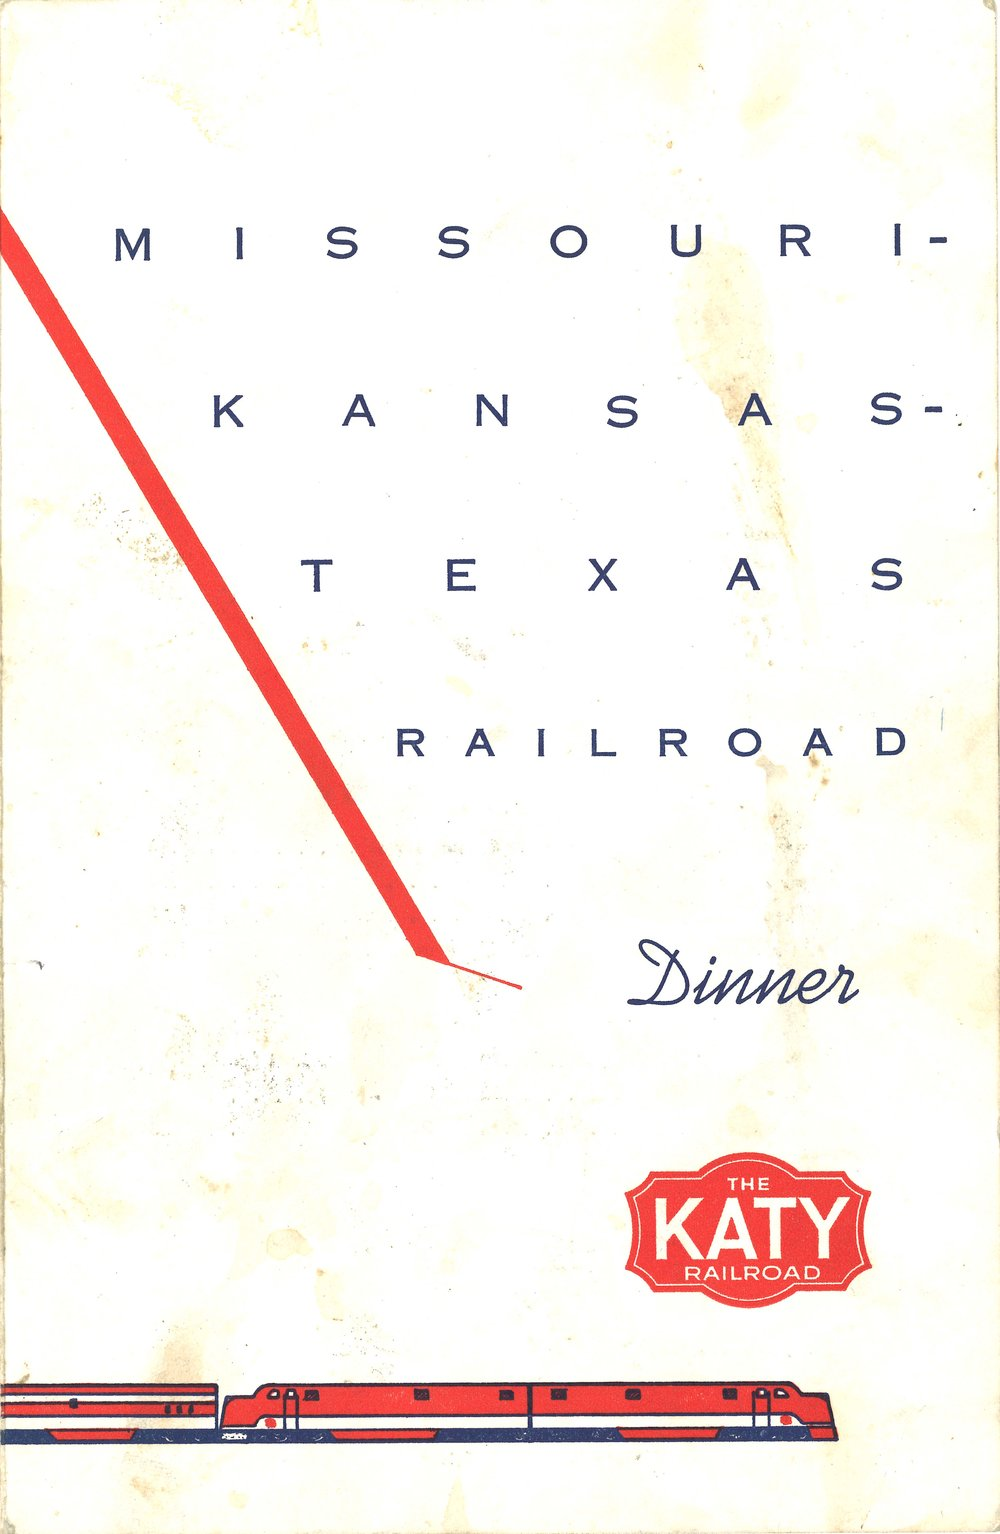 MKT Railroad Katy Railroad Dinner Menu 2_sm1.jpg